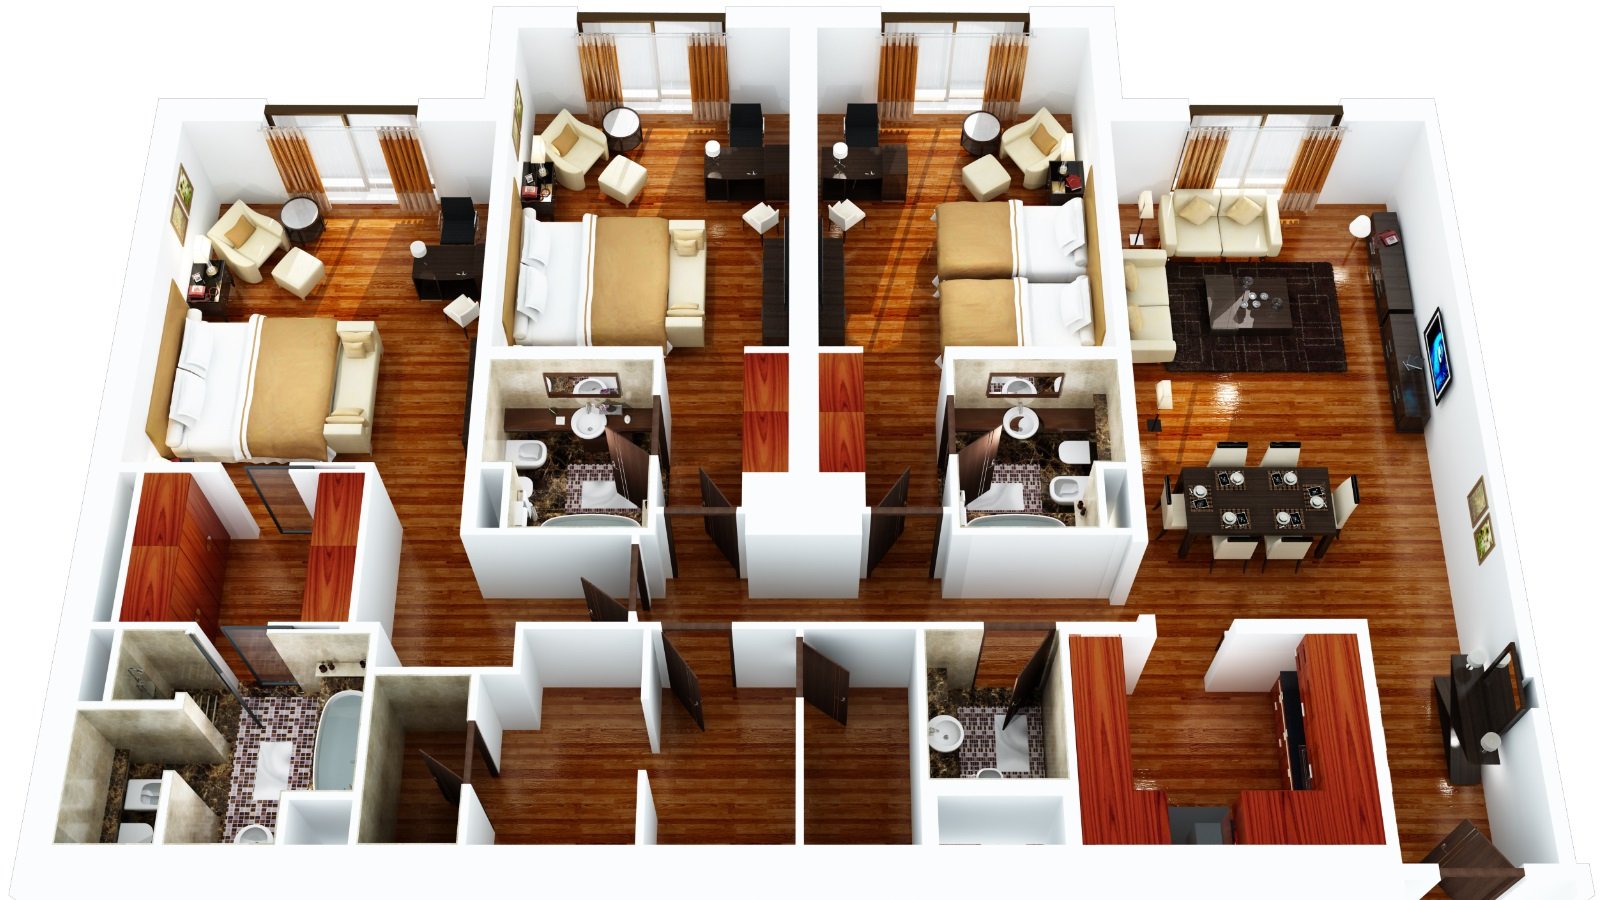 grosvenor house dubai | 2 bedroom residence apartments | dubai